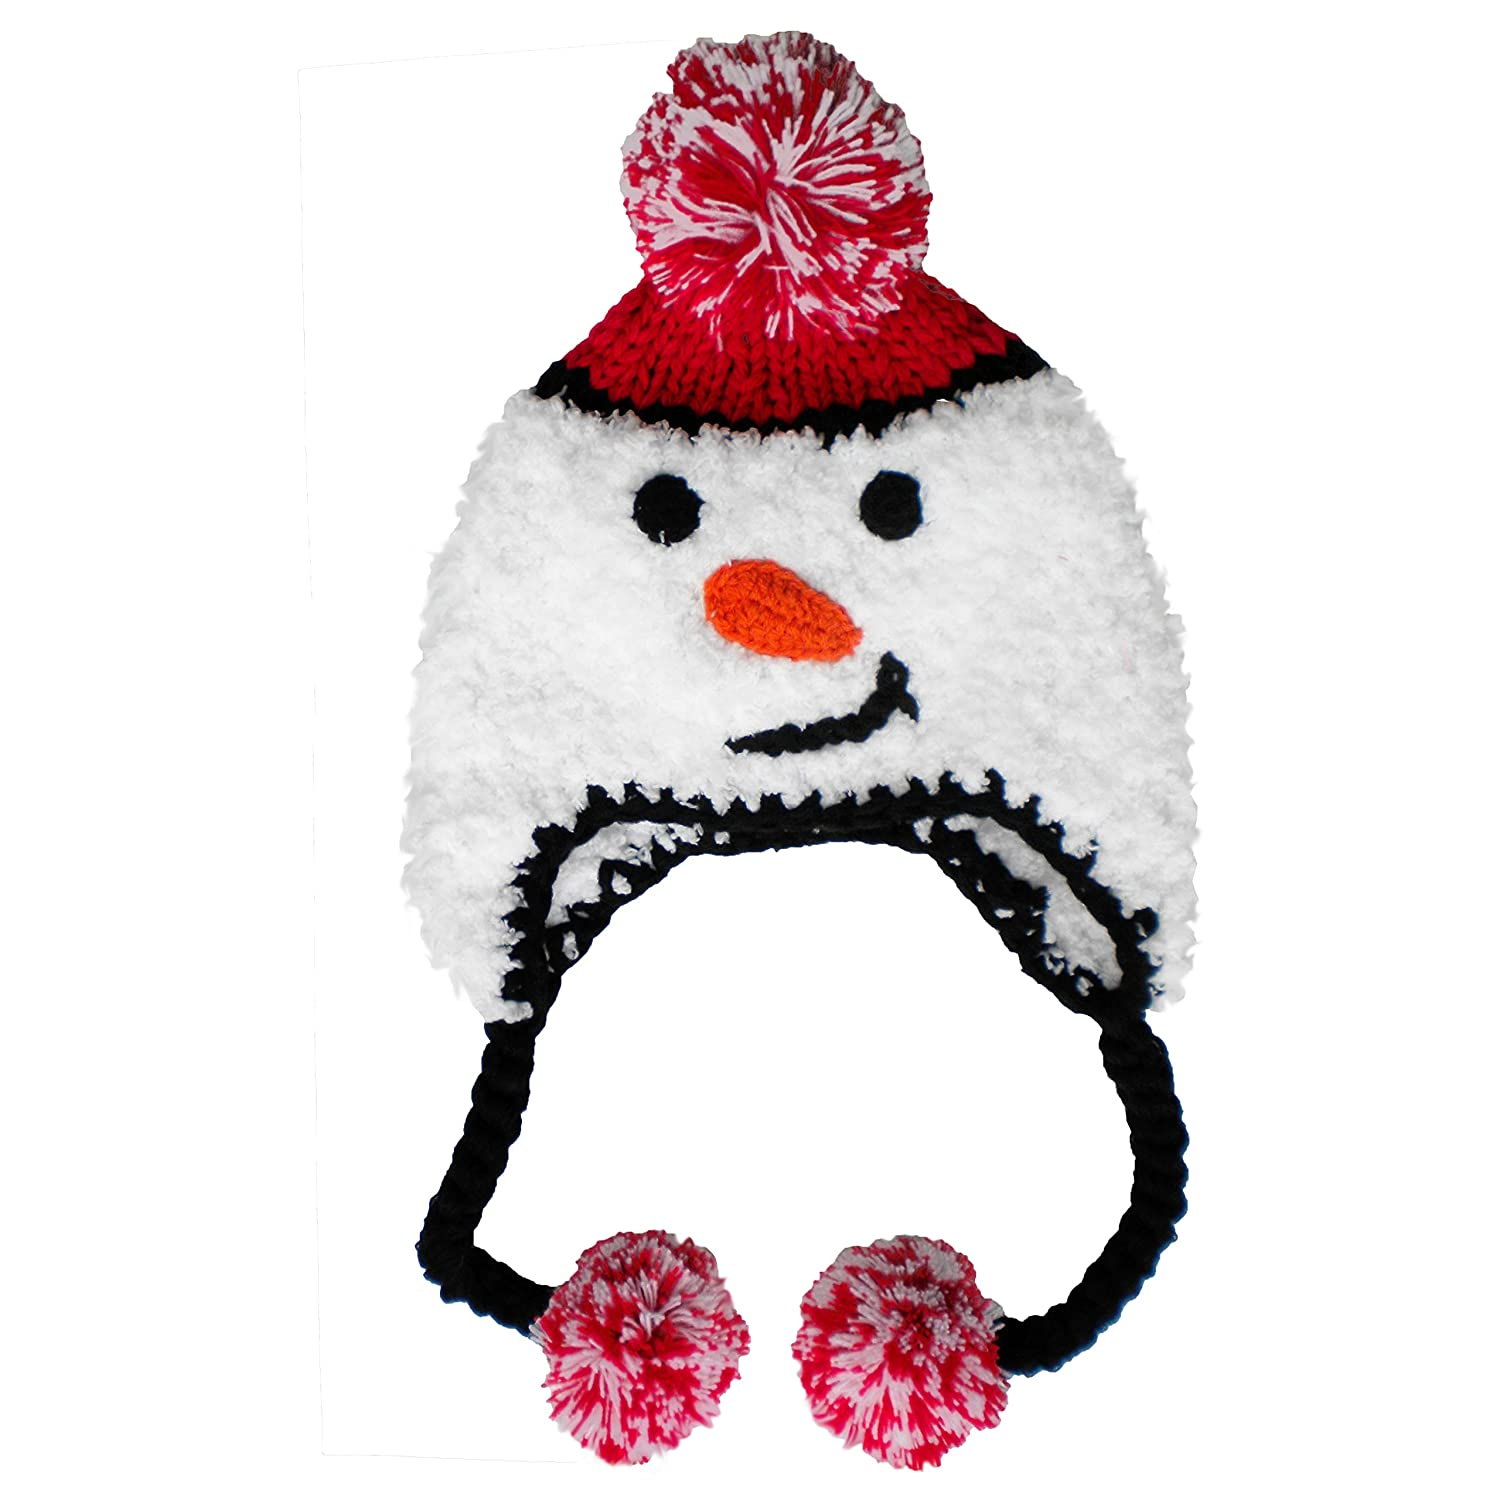 ec0ae59958ea4 Amazon.com  Huggalugs Baby and Toddler Boys or Girls Plush Knit Snowman  Beanie Hat  Clothing